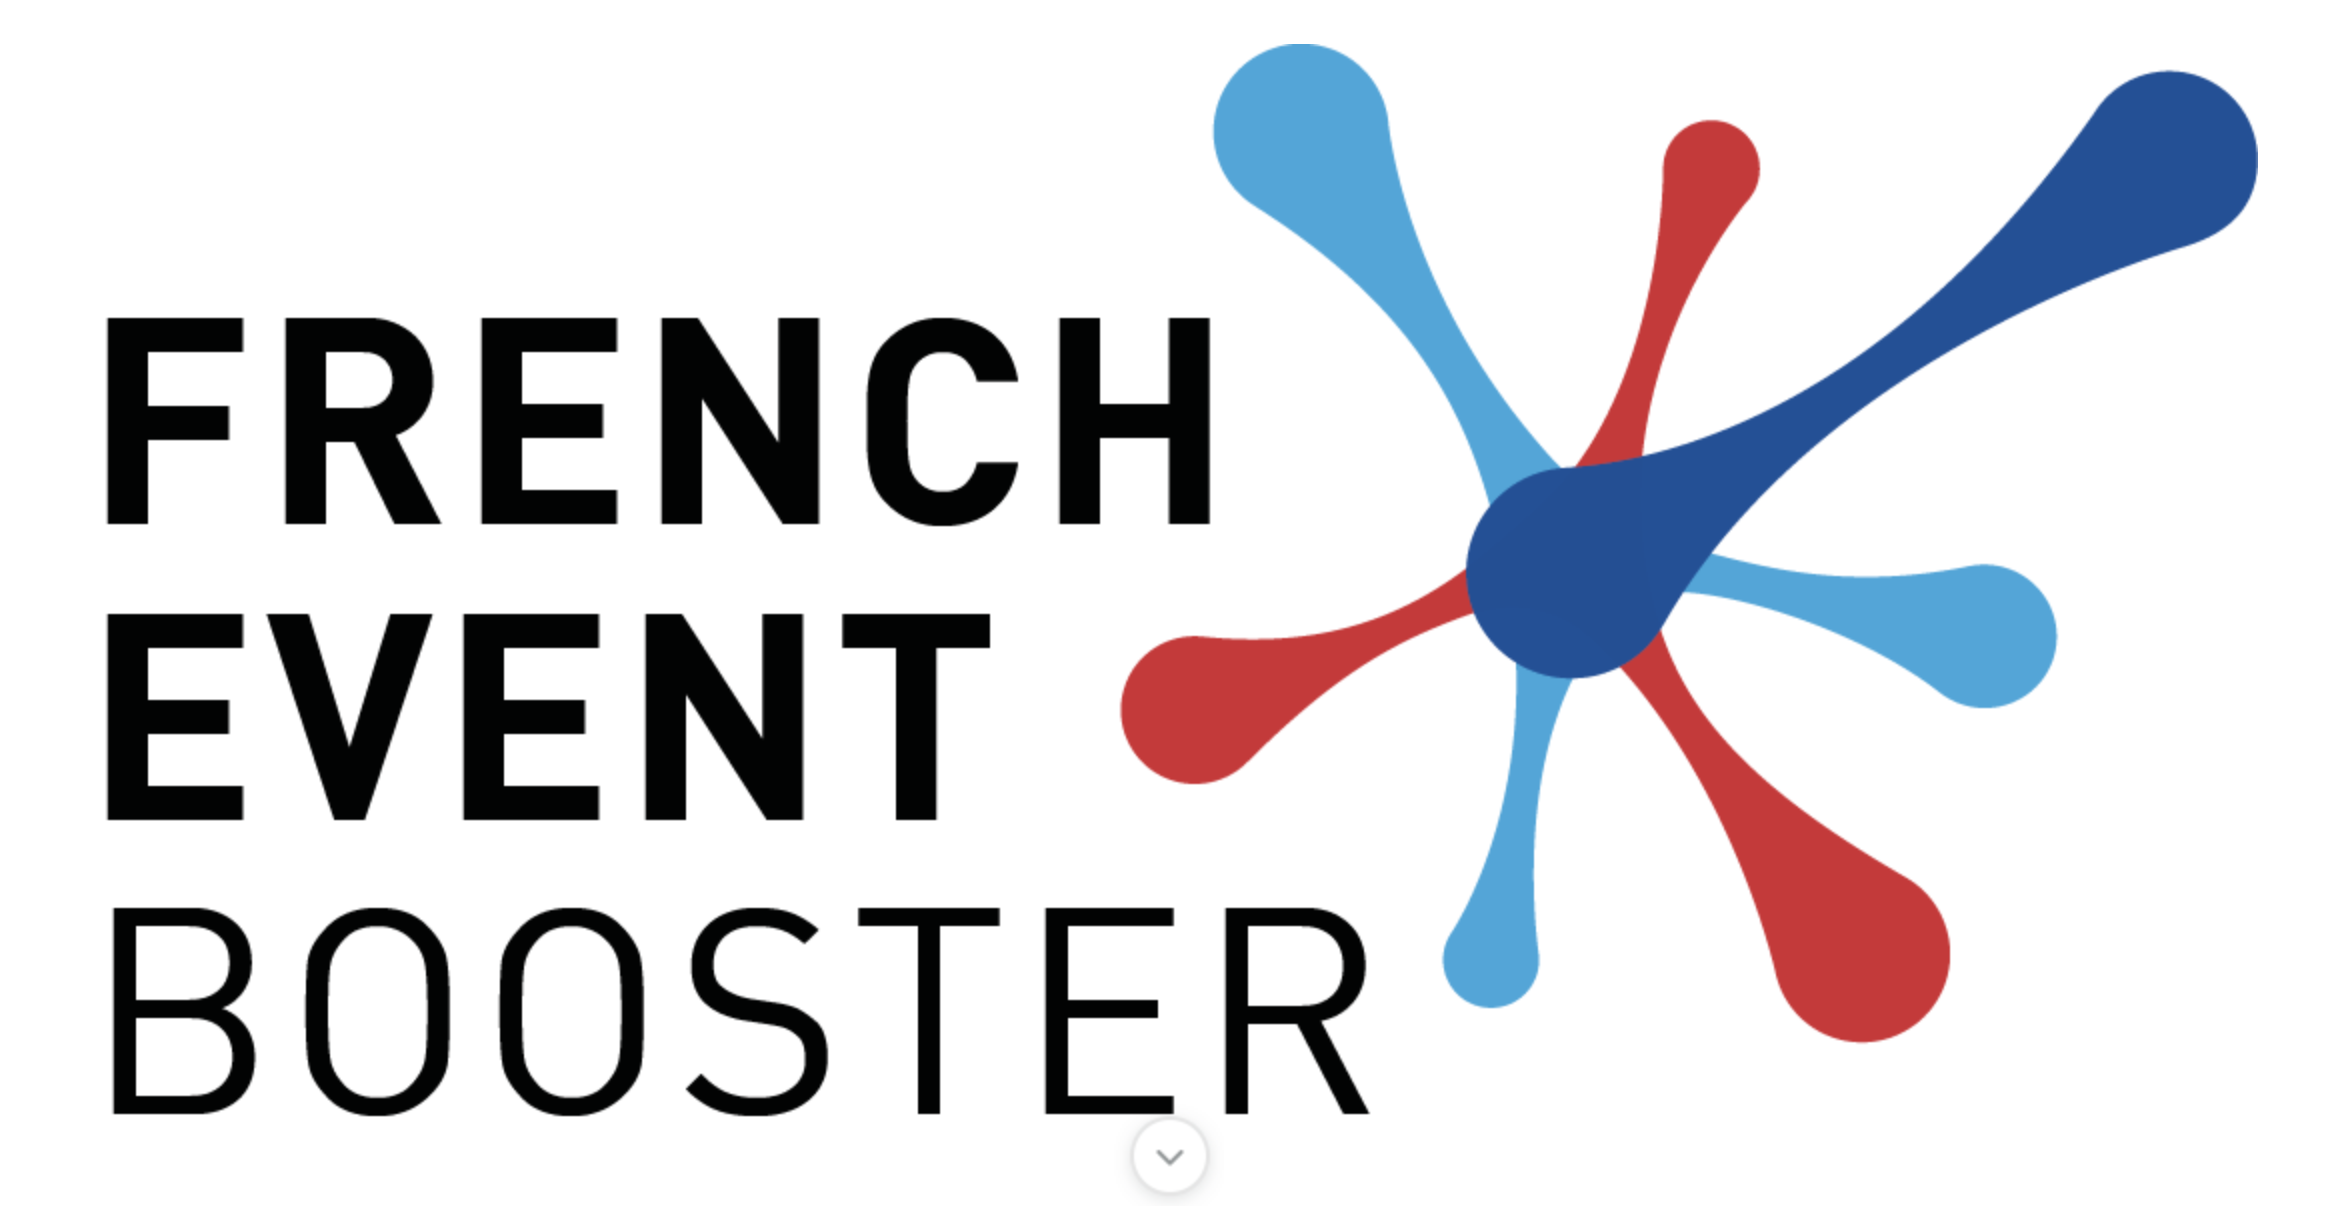 OPENevents partenaire du French Event Booster !